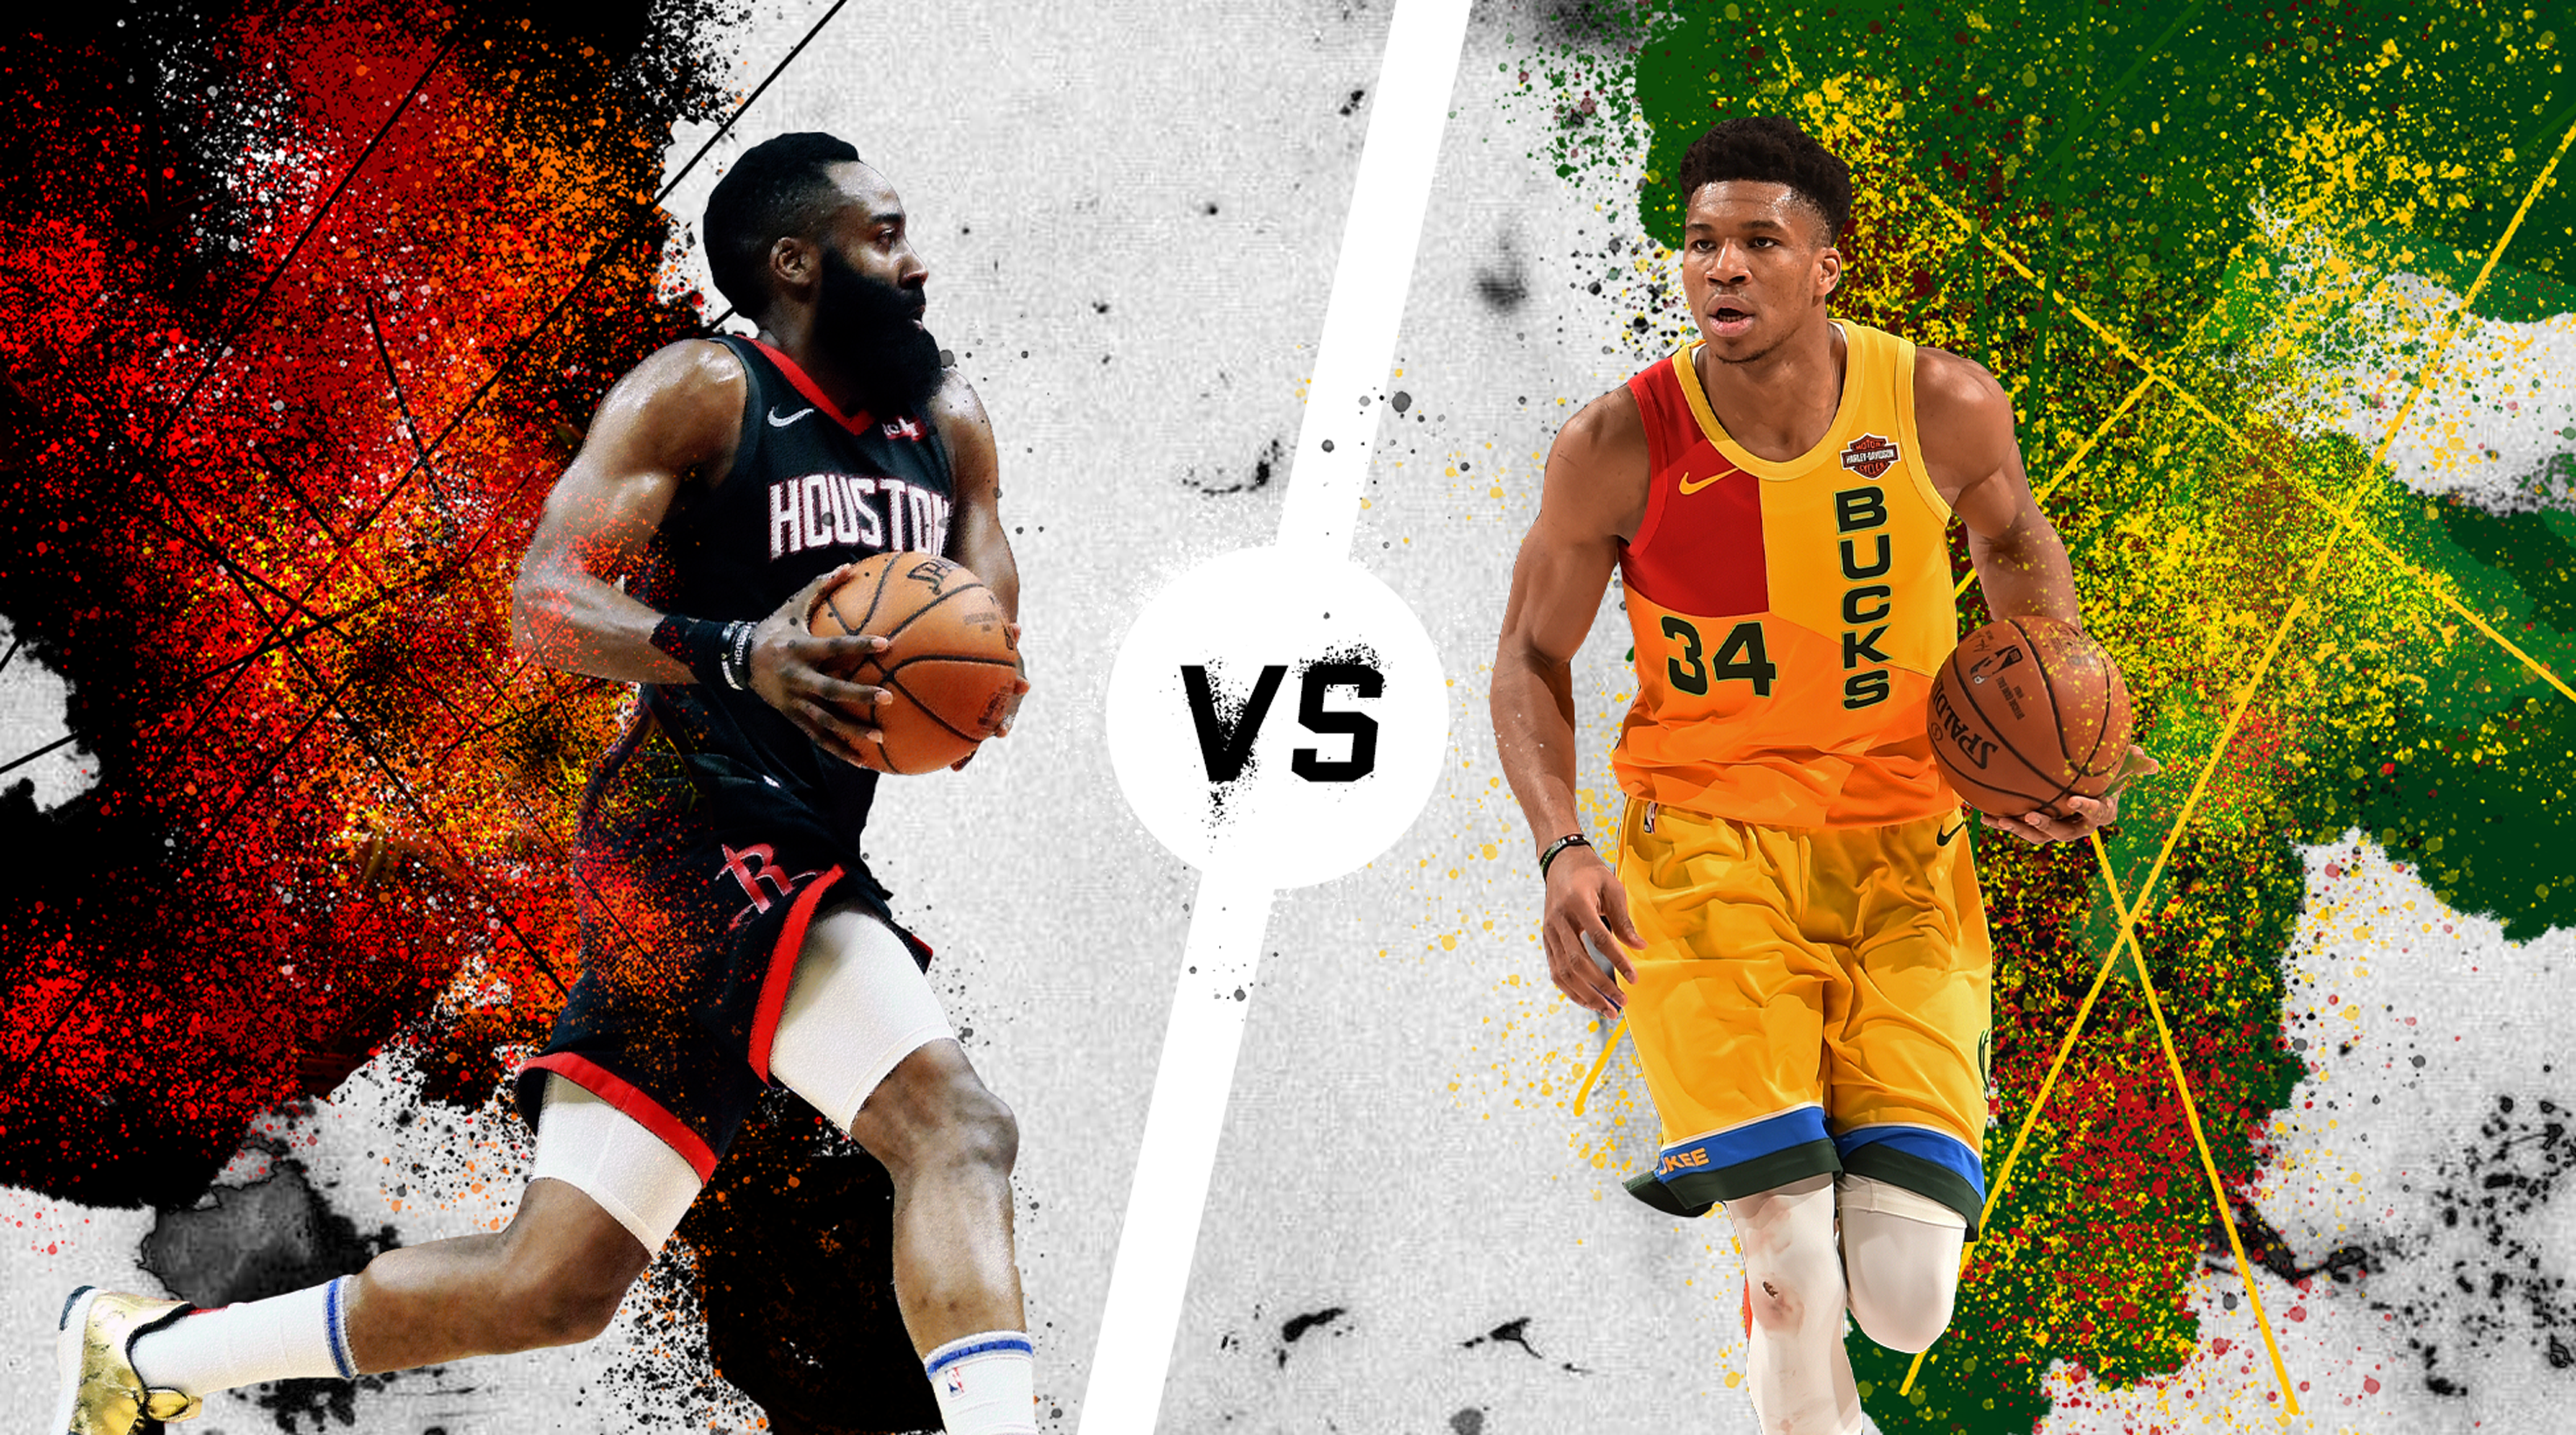 The 2018-19 awards race has been marked by tight battles, with Giannis vs. Harden, Luka vs. Trae and more brewing all year. SI's writers make their picks from the list of close calls.